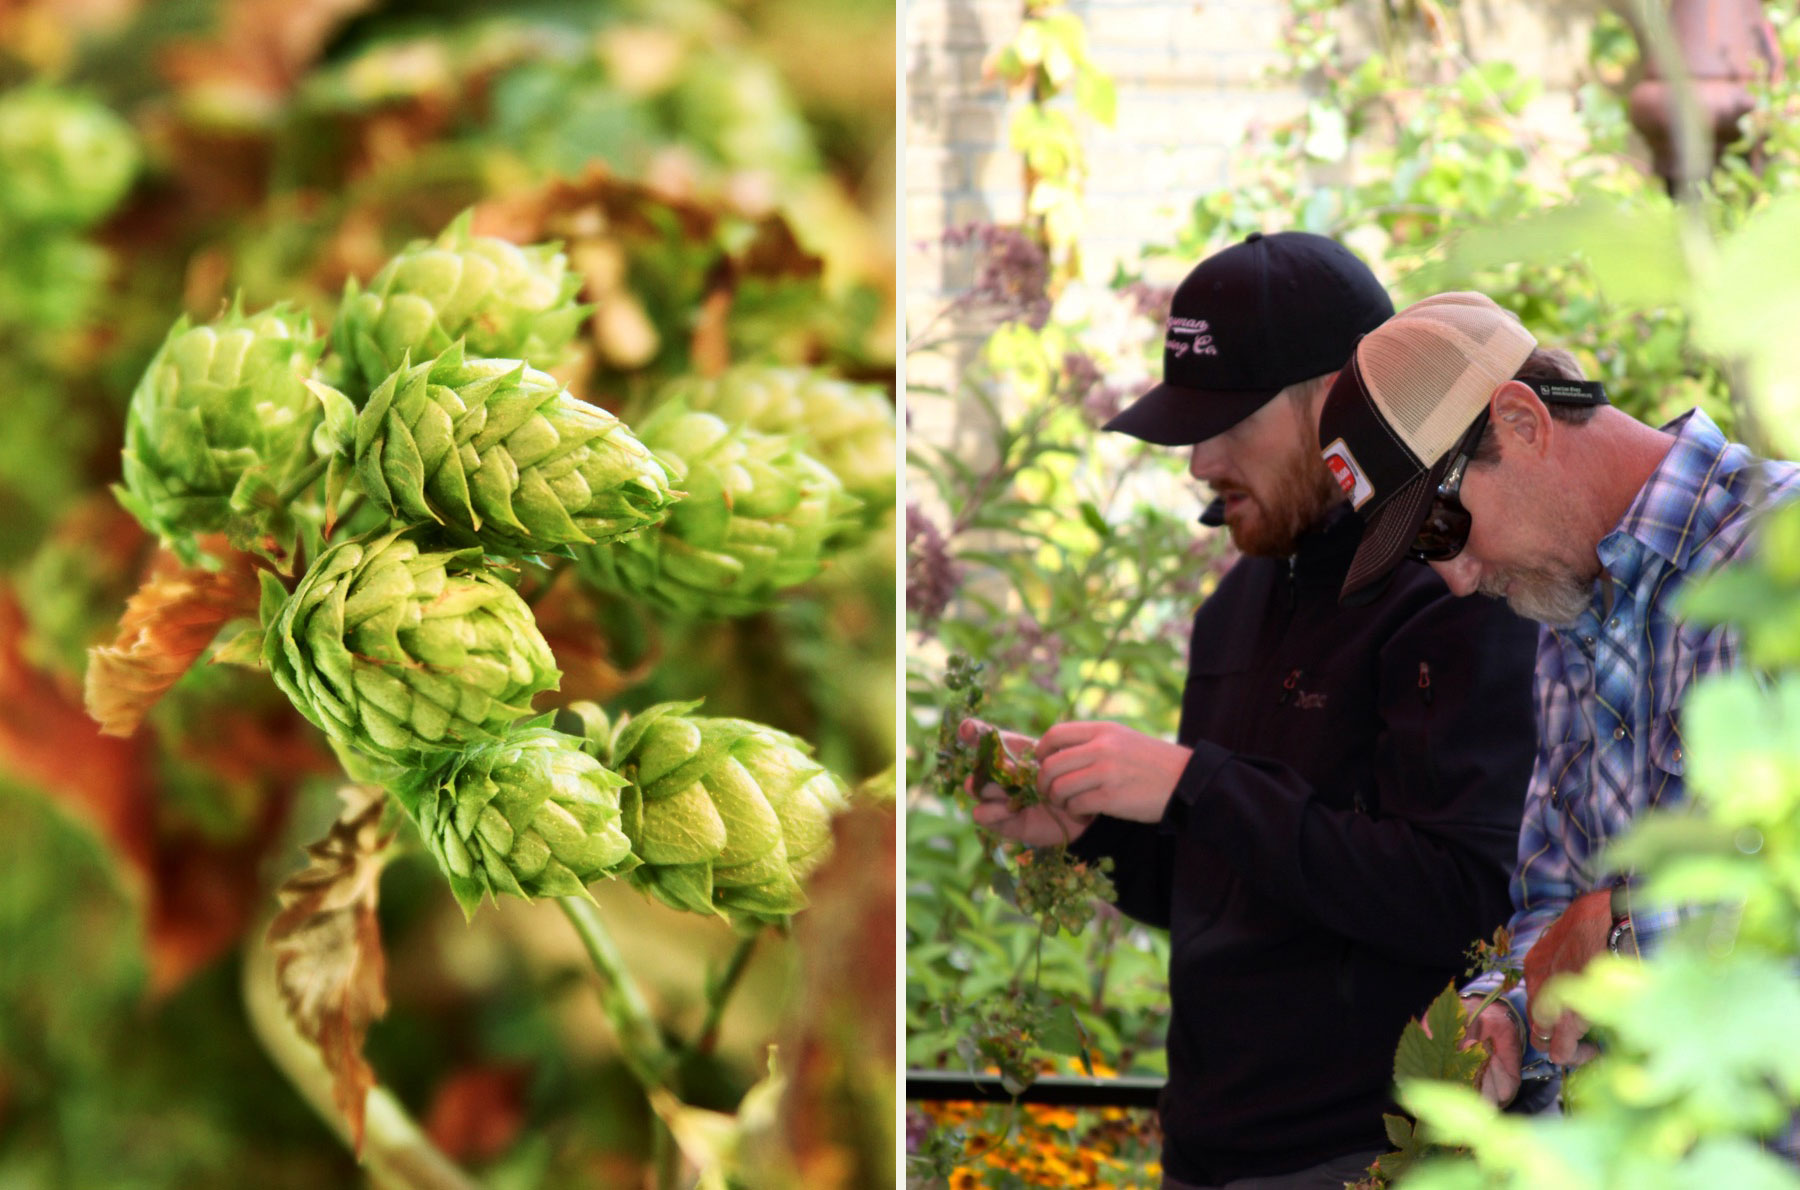 Ale Works Hop Harvest - Every October, we pluck the fresh Cascade hops that climb up our exterior brick walls. We hand our harvest over to our friends at the Bozeman Brewing Co. who create a fresh-hopped Ale Works Hopzone brew exclusively for us! It couldn't be better to contribute our own hops to our own signature brew, as well as to the Community Collaboration Terroir IPA that the brewery makes annually from a combination of hops that both grow wild across the Gallatin Valley (and are picked by our beer-geek community) and those donated by local backyard growers like us. The annual harvest party at the brewery is a highlight of every autumn, as the community pitches in to clean and pluck. Ale Works donates the food, and the beer, well, it flows….